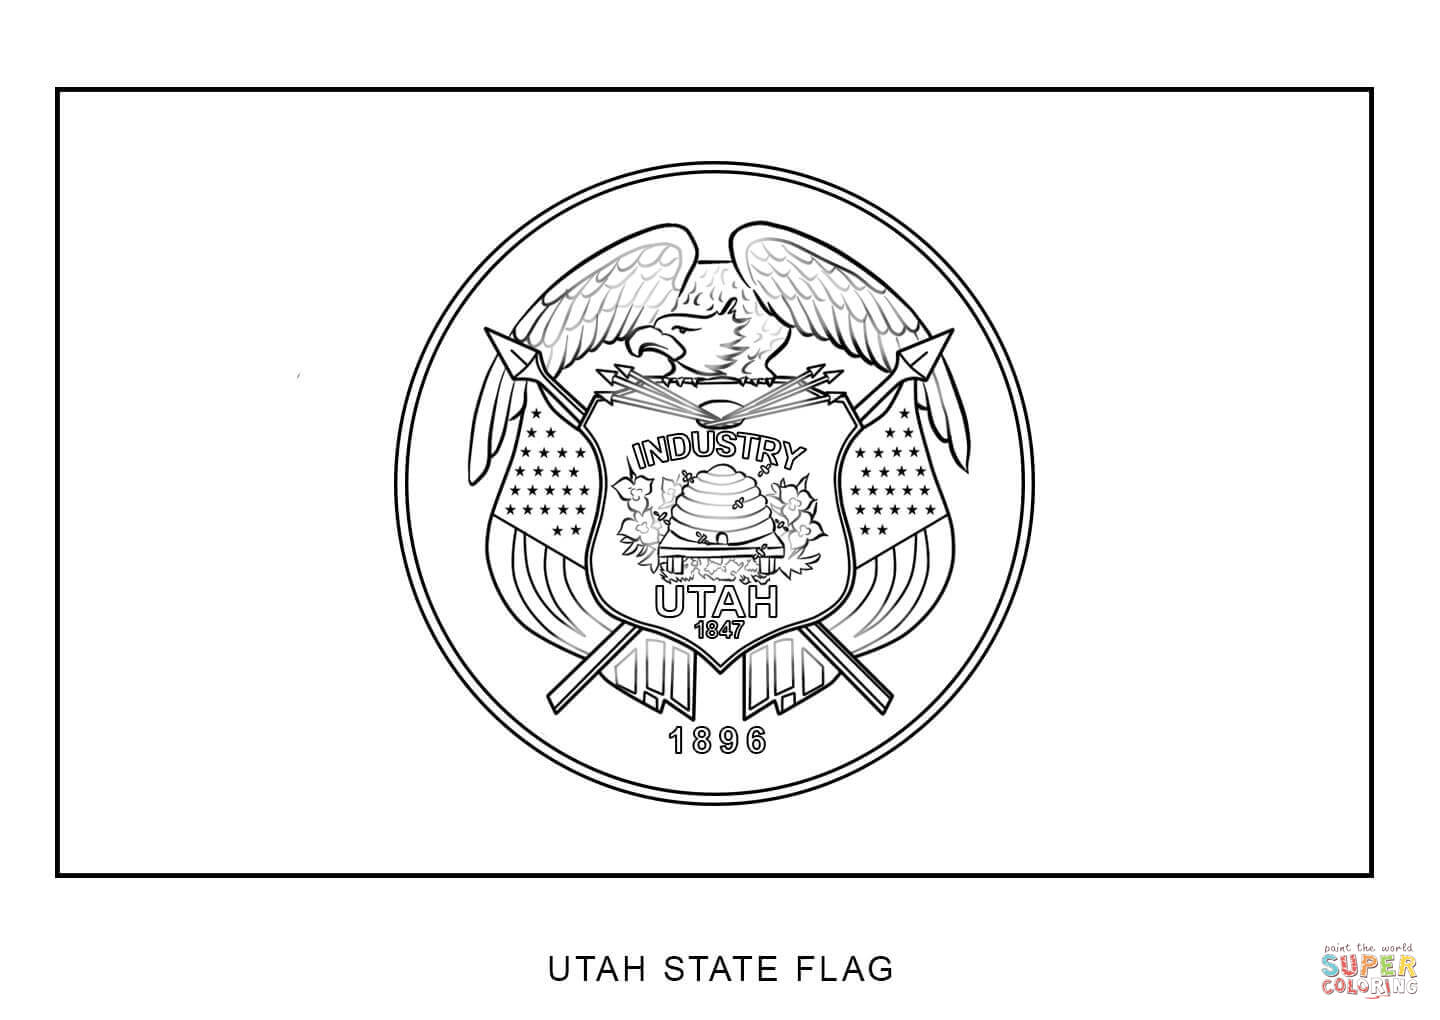 Click the utah state flag